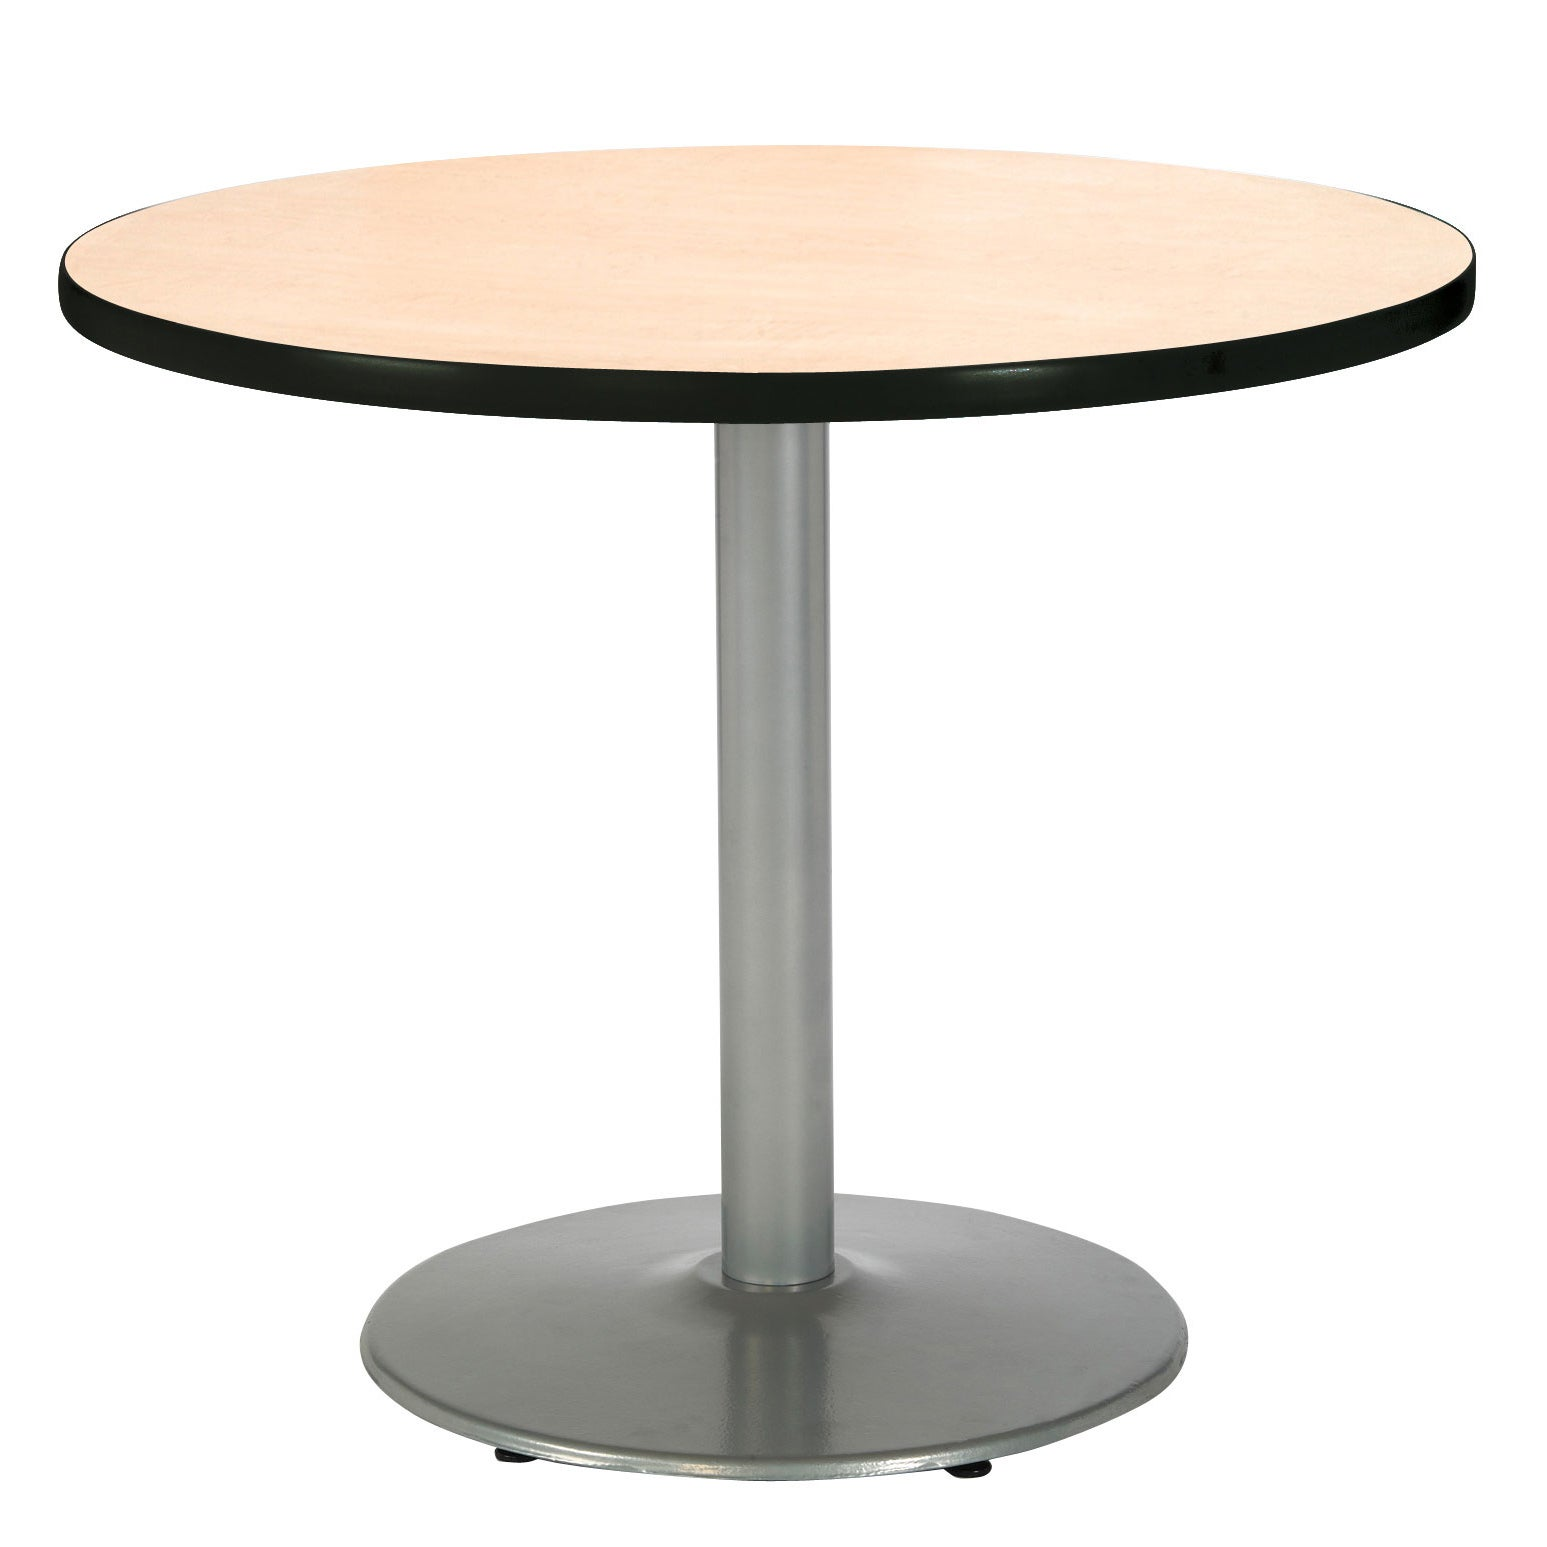 KFI-36in-Round-Pedestal-Table-with-Round-Silver-Base thumbnail 8